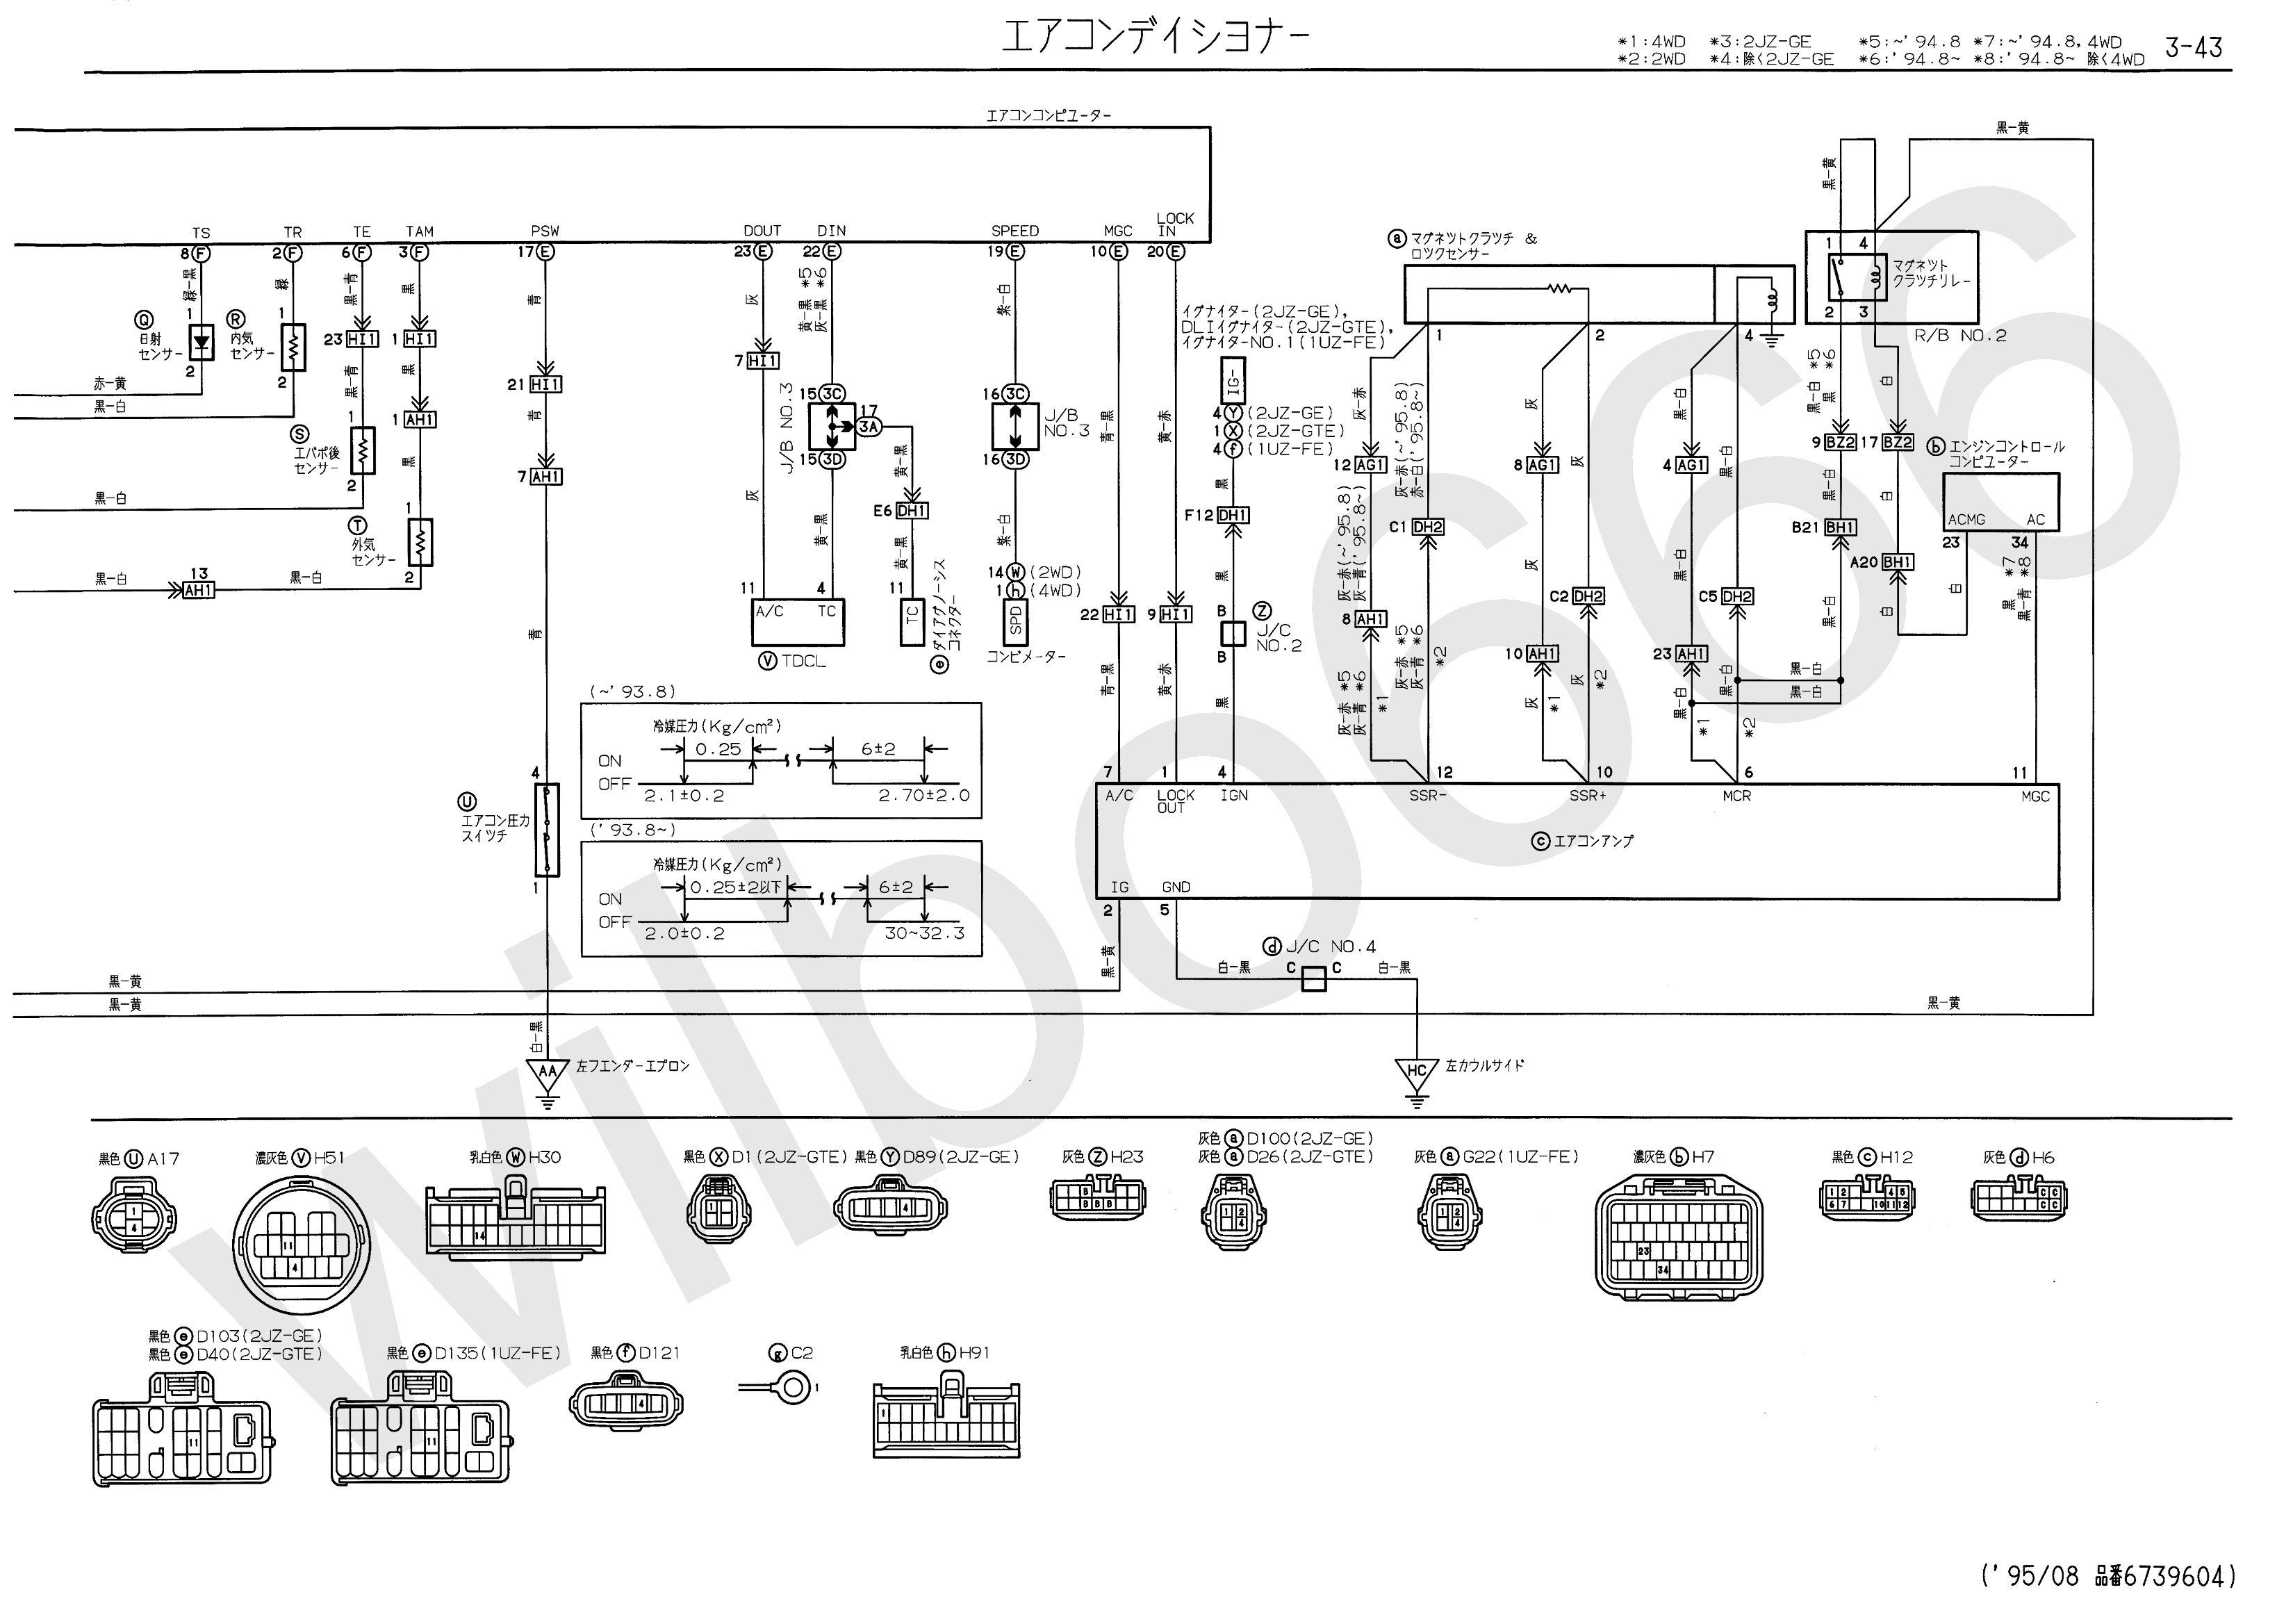 1999 Toyota Supra Engine Diagram - List of Wiring Diagrams on